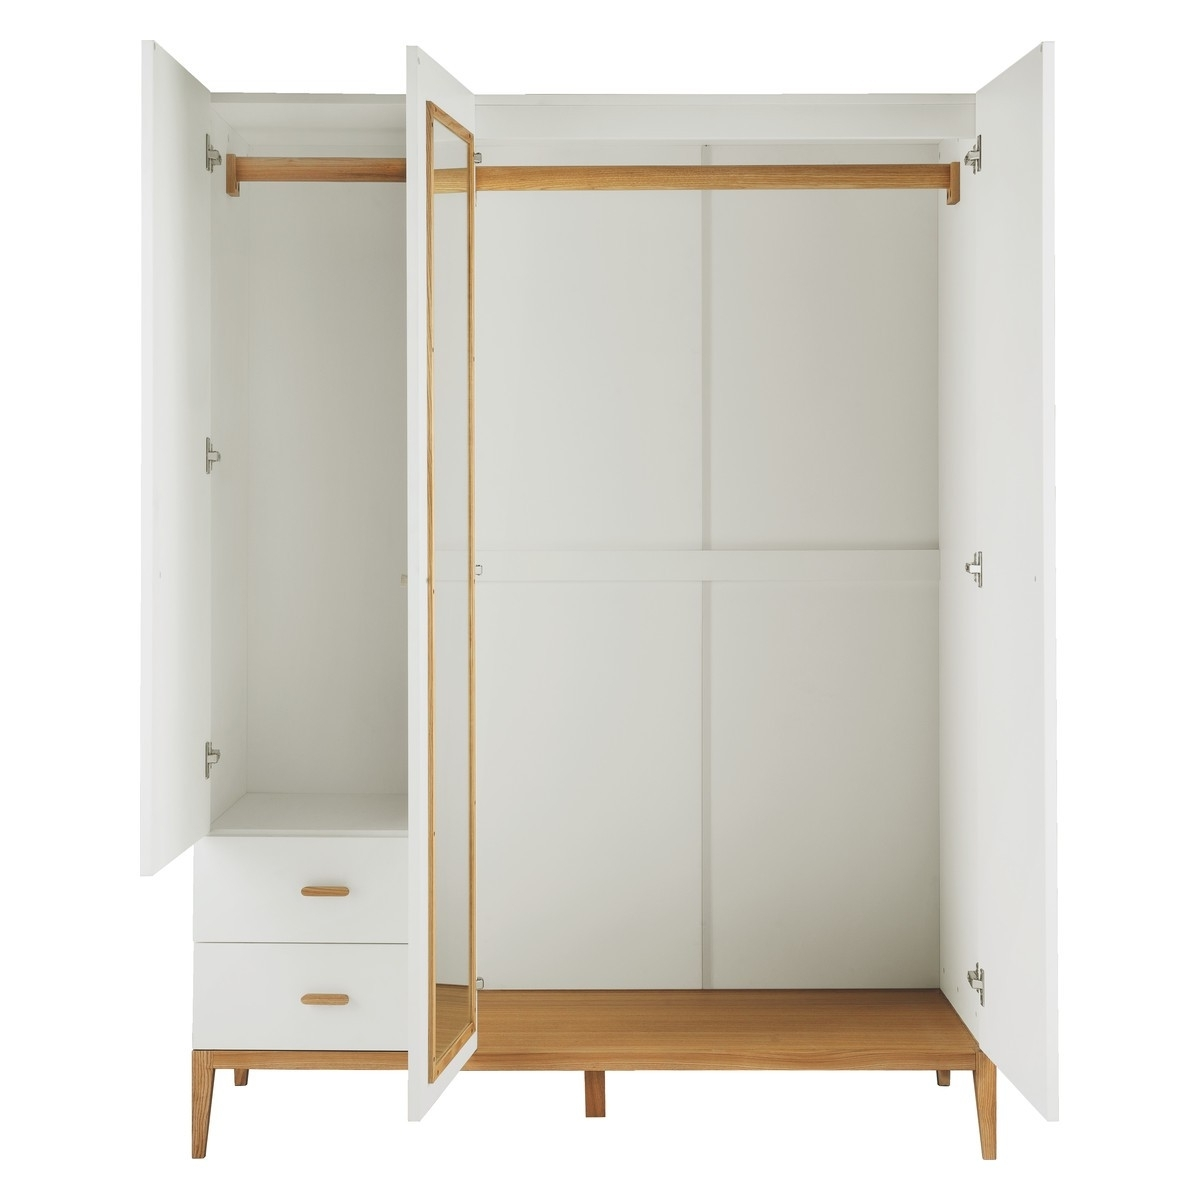 3 Door Wardrobes With Regard To Well Known Tatsuma Ash White 3 Door Wardrobe (View 3 of 15)